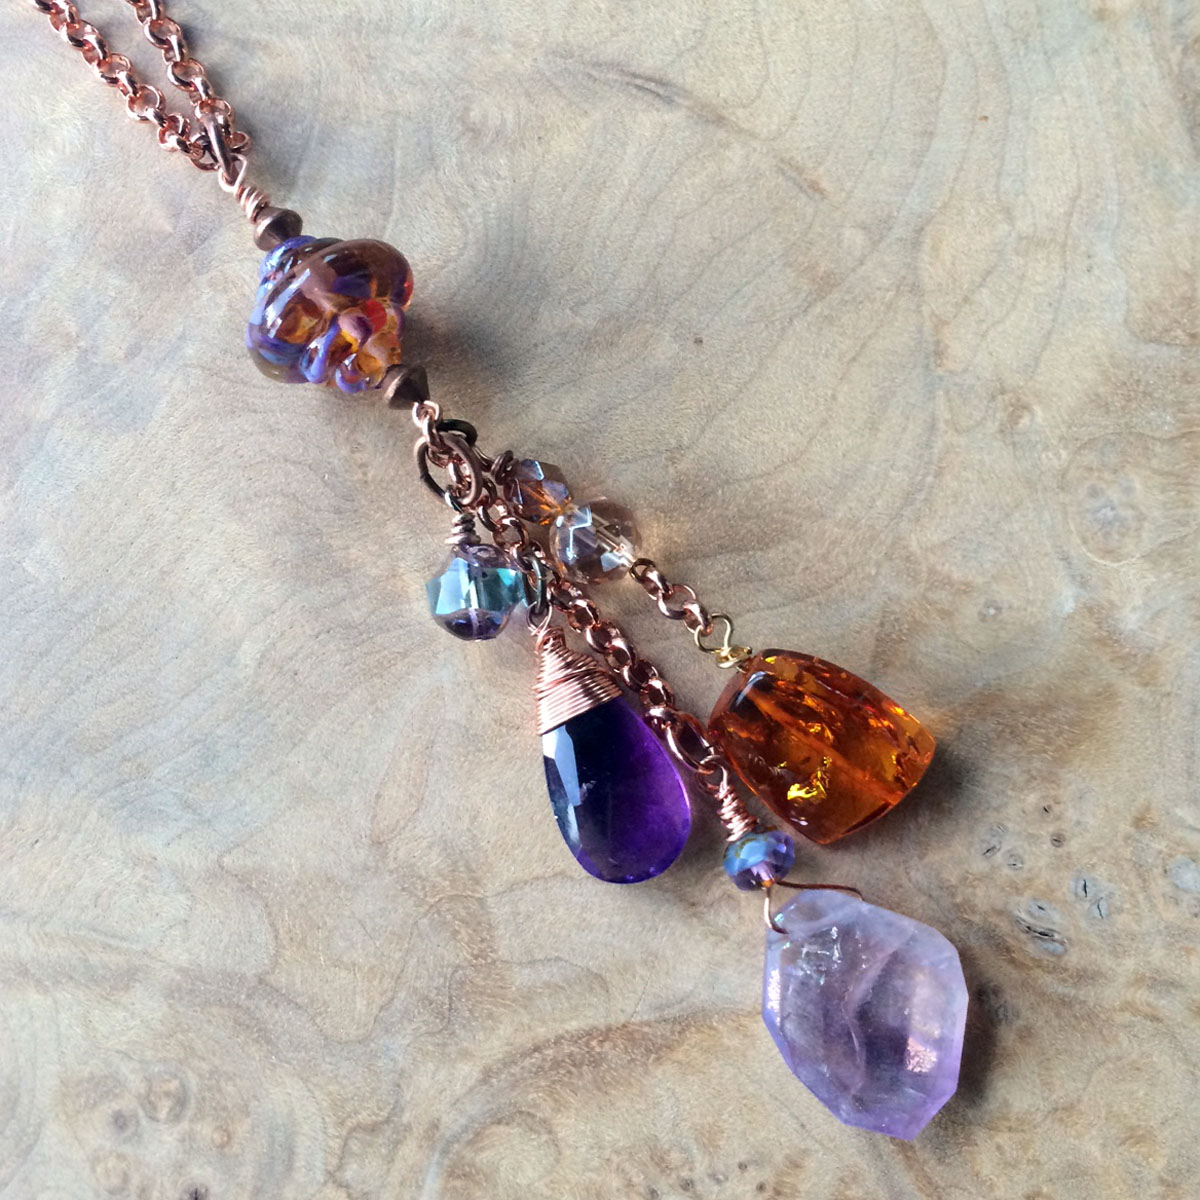 Amethyst and amber necklace